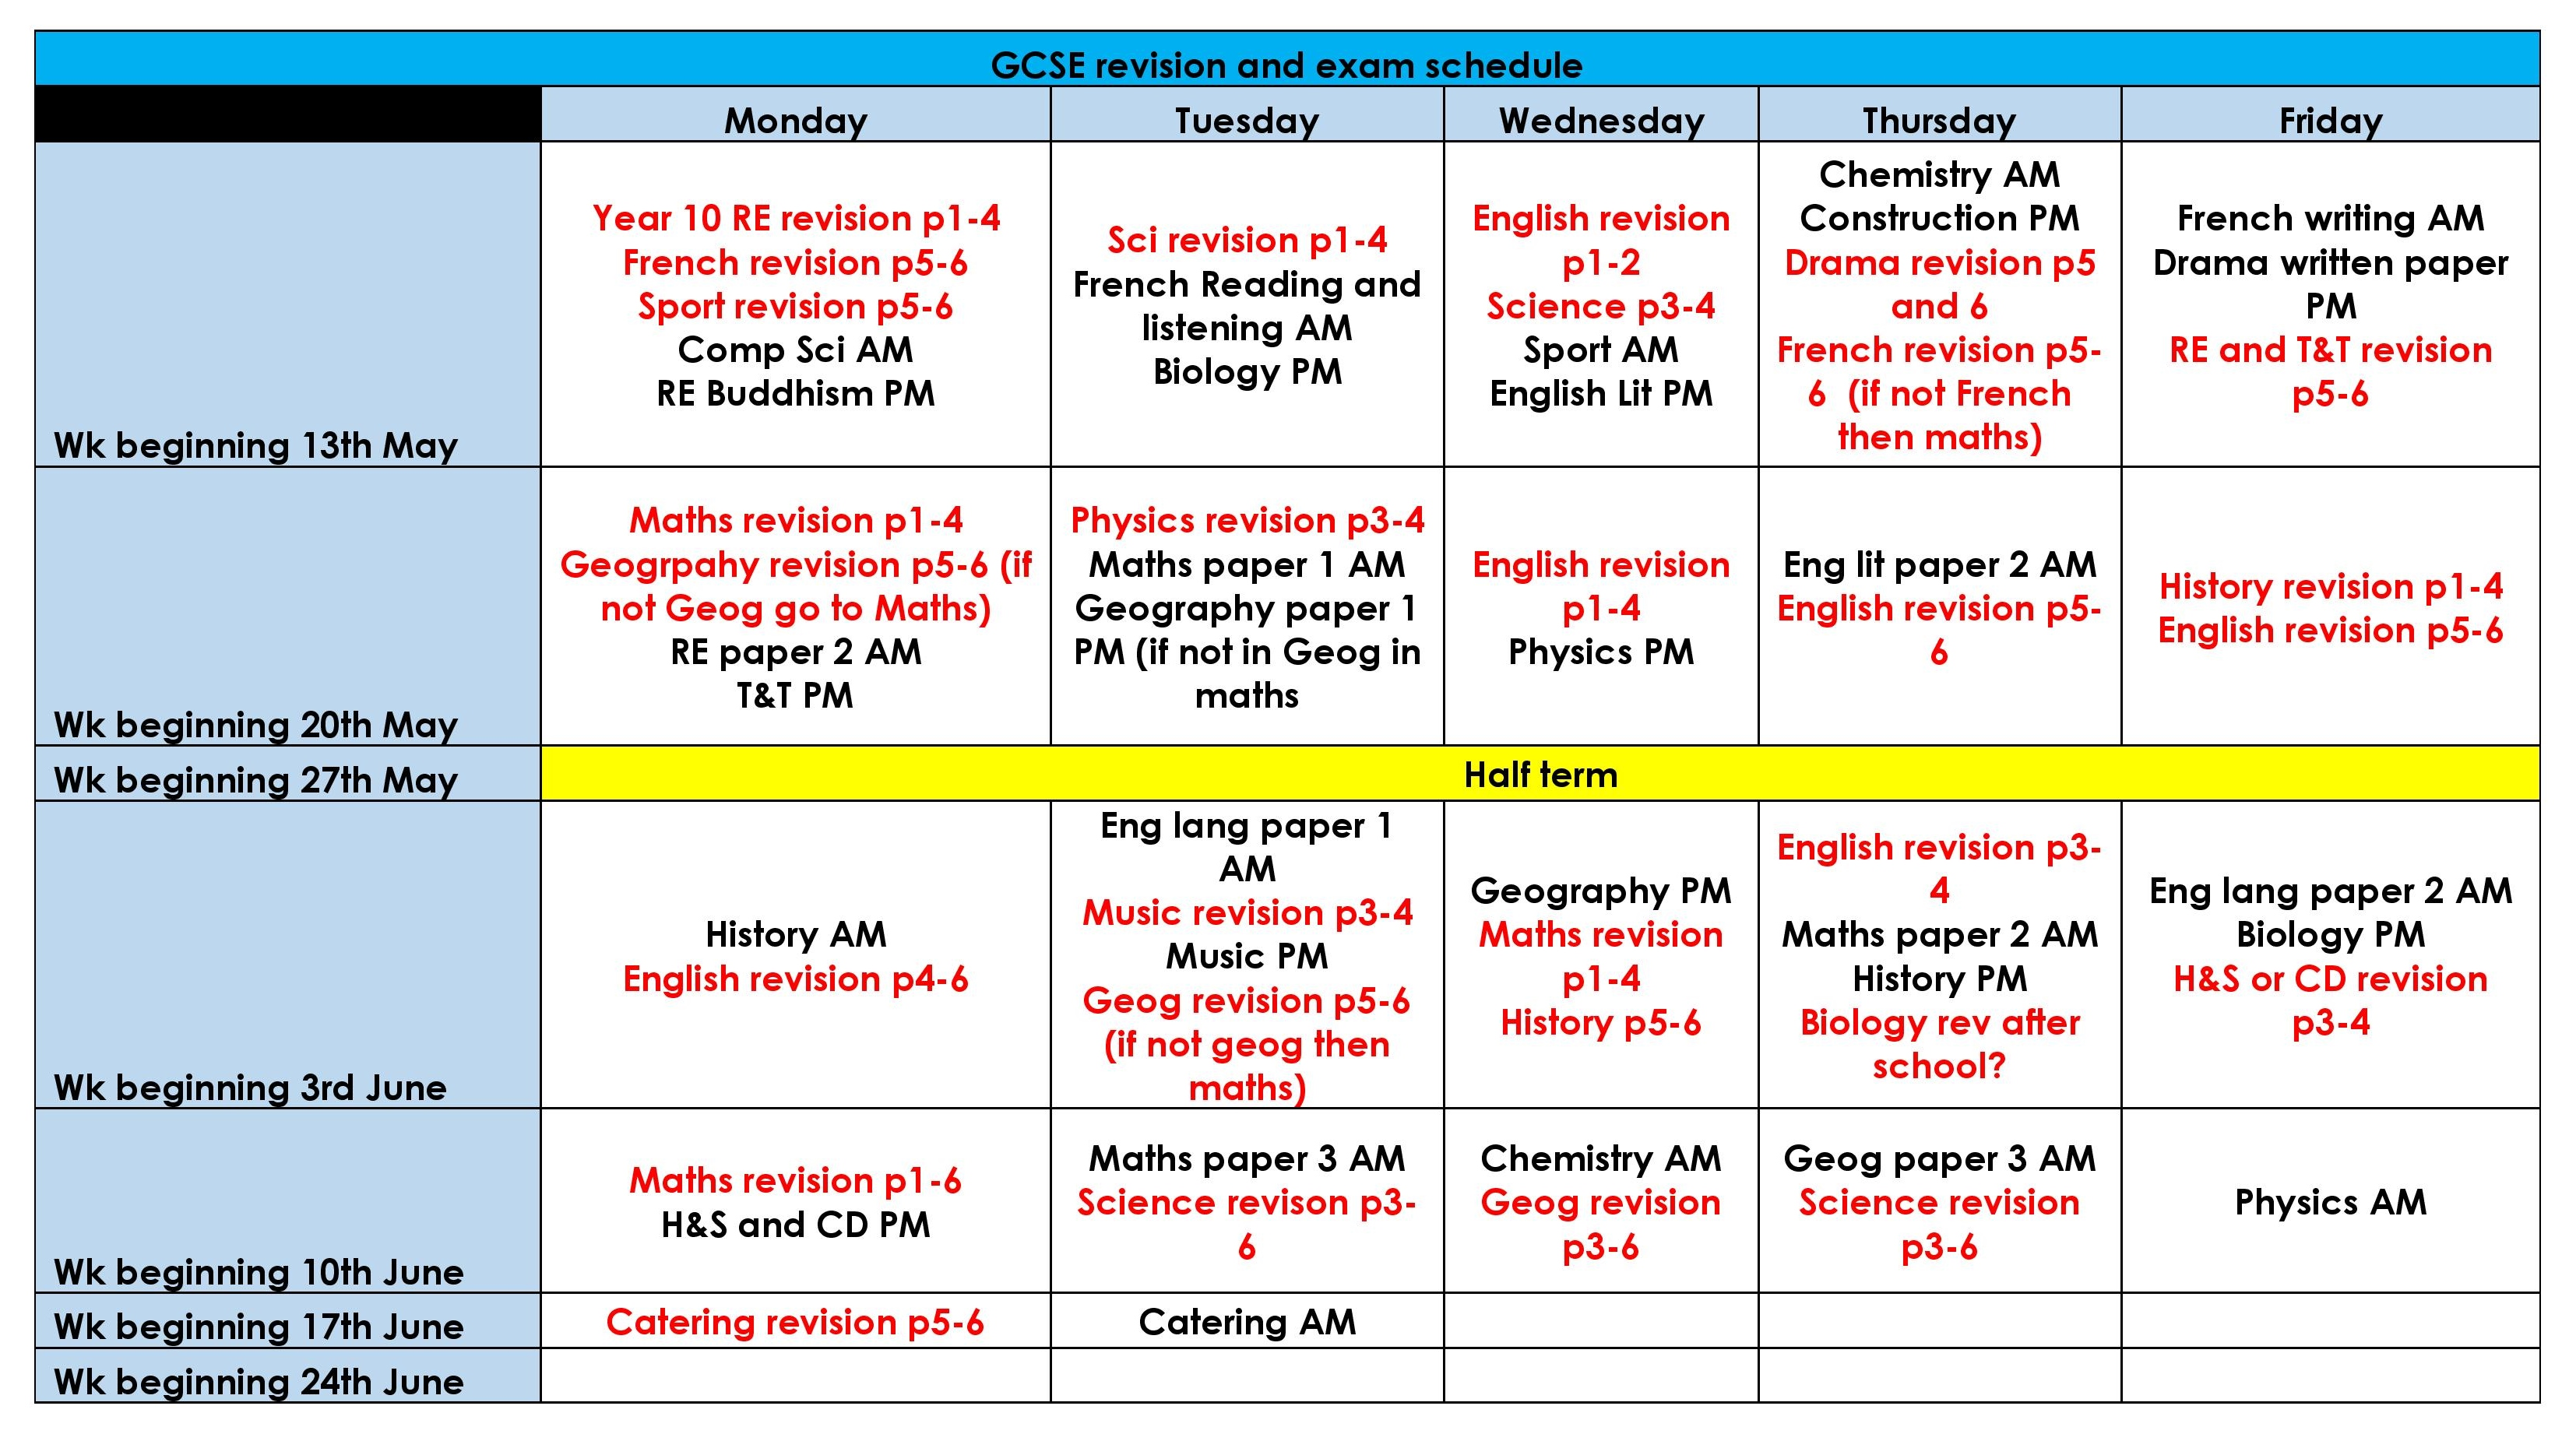 GCSE%20revision%20and%20exam%20schedule-page-001.jpg